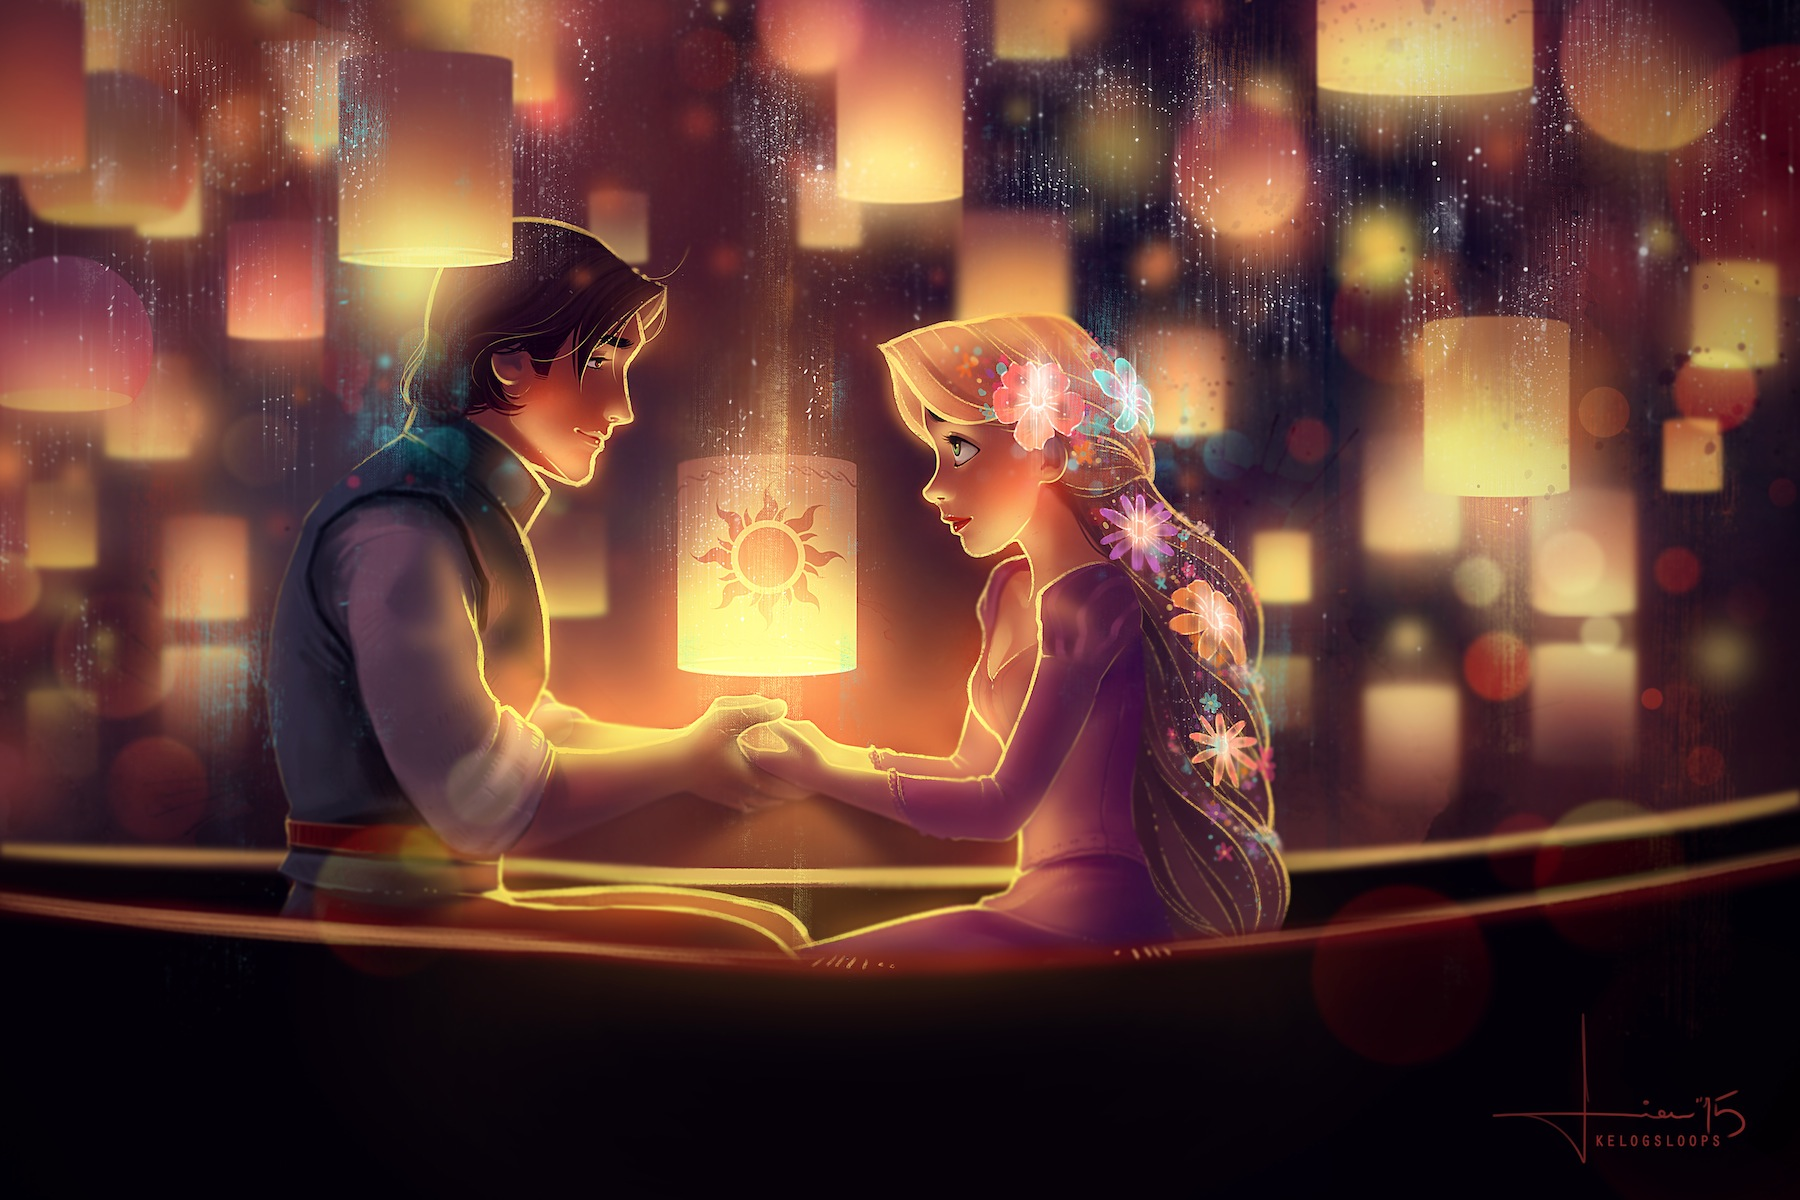 Disney fairytales club images Rapunzel and Flynn HD wallpaper and ... for Tangled Wallpapers Hd Romantic  257ylc